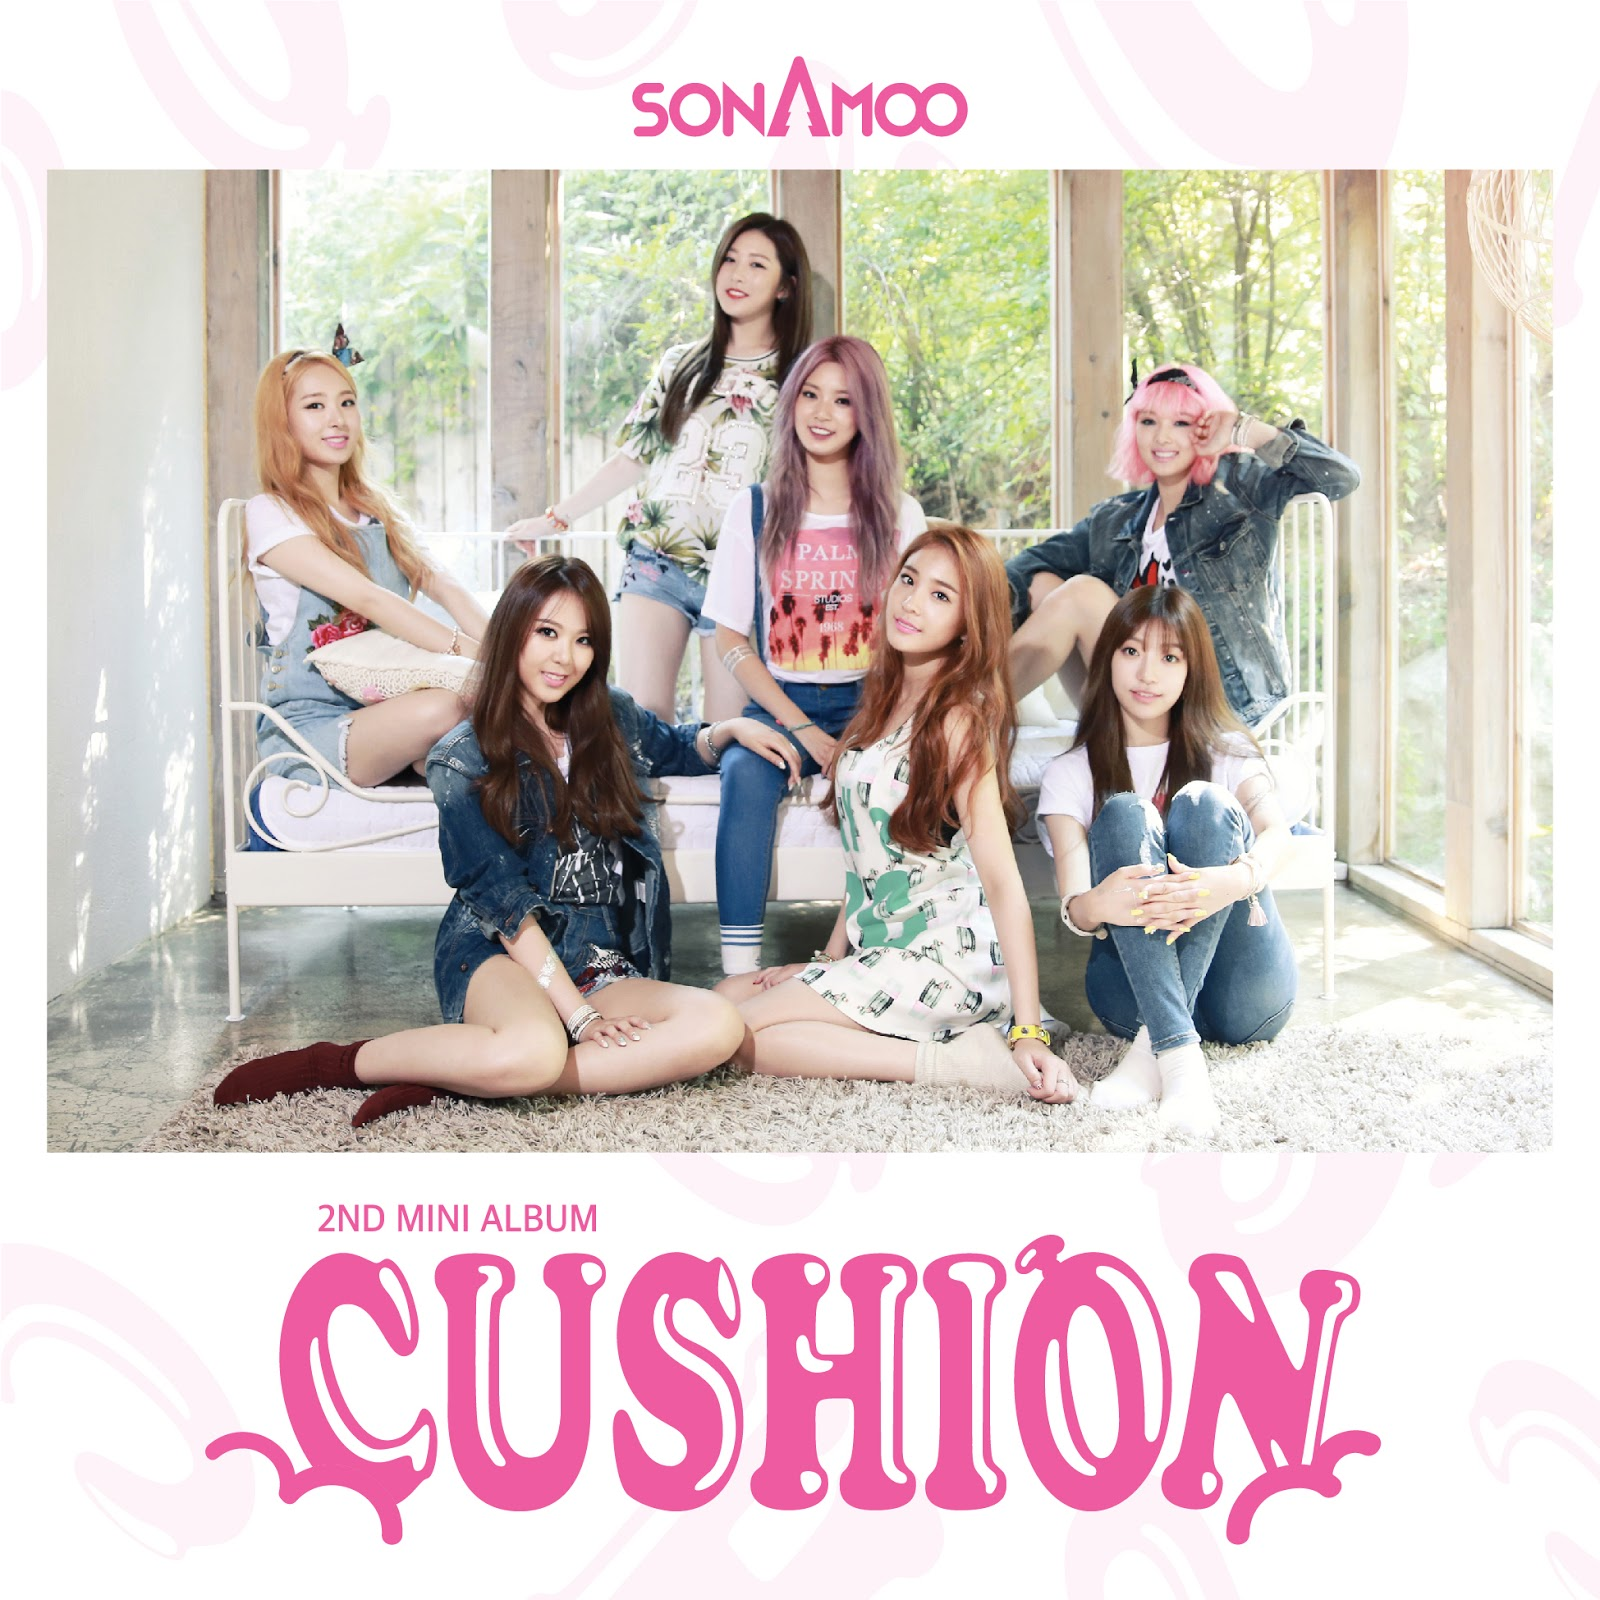 Download Sonamoo Cushion mp3 full mini album mv mp4